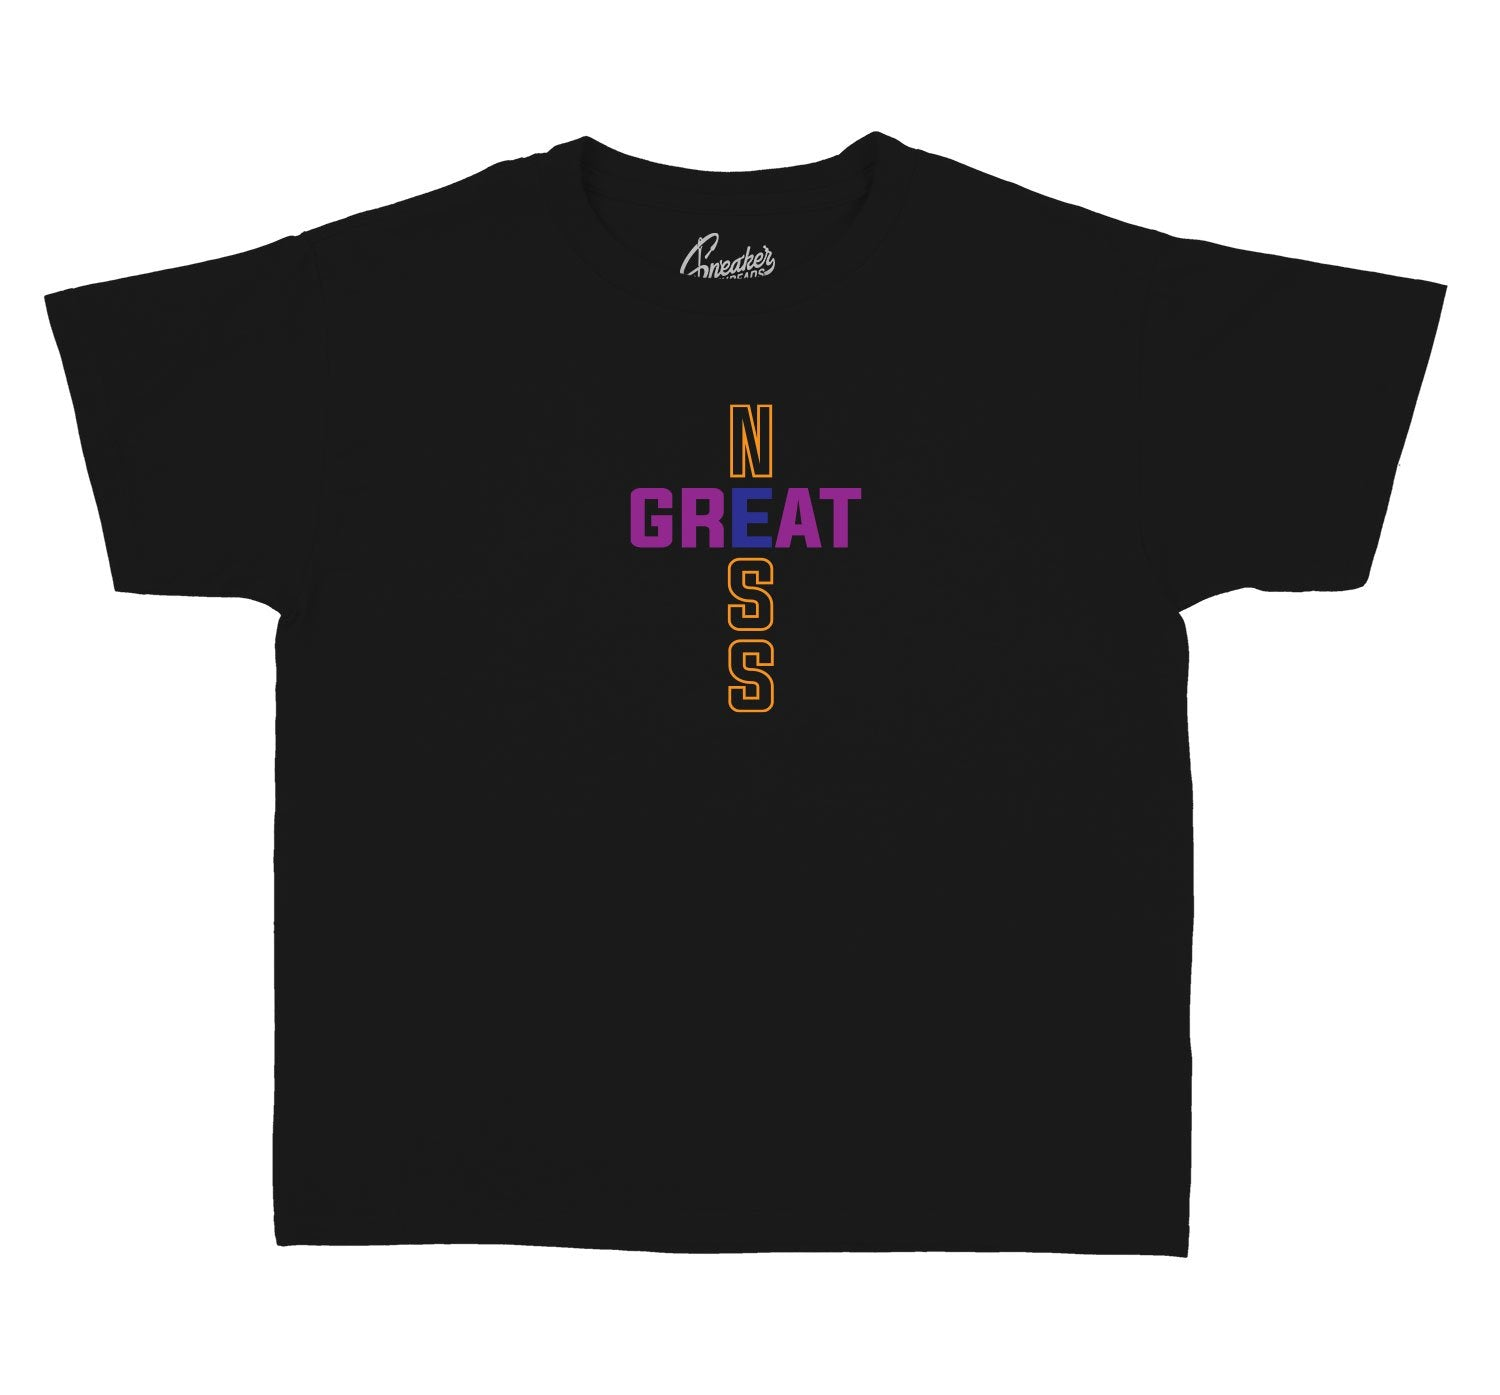 Jordan 4 Rush Violet Greatness Cross shirt for kids